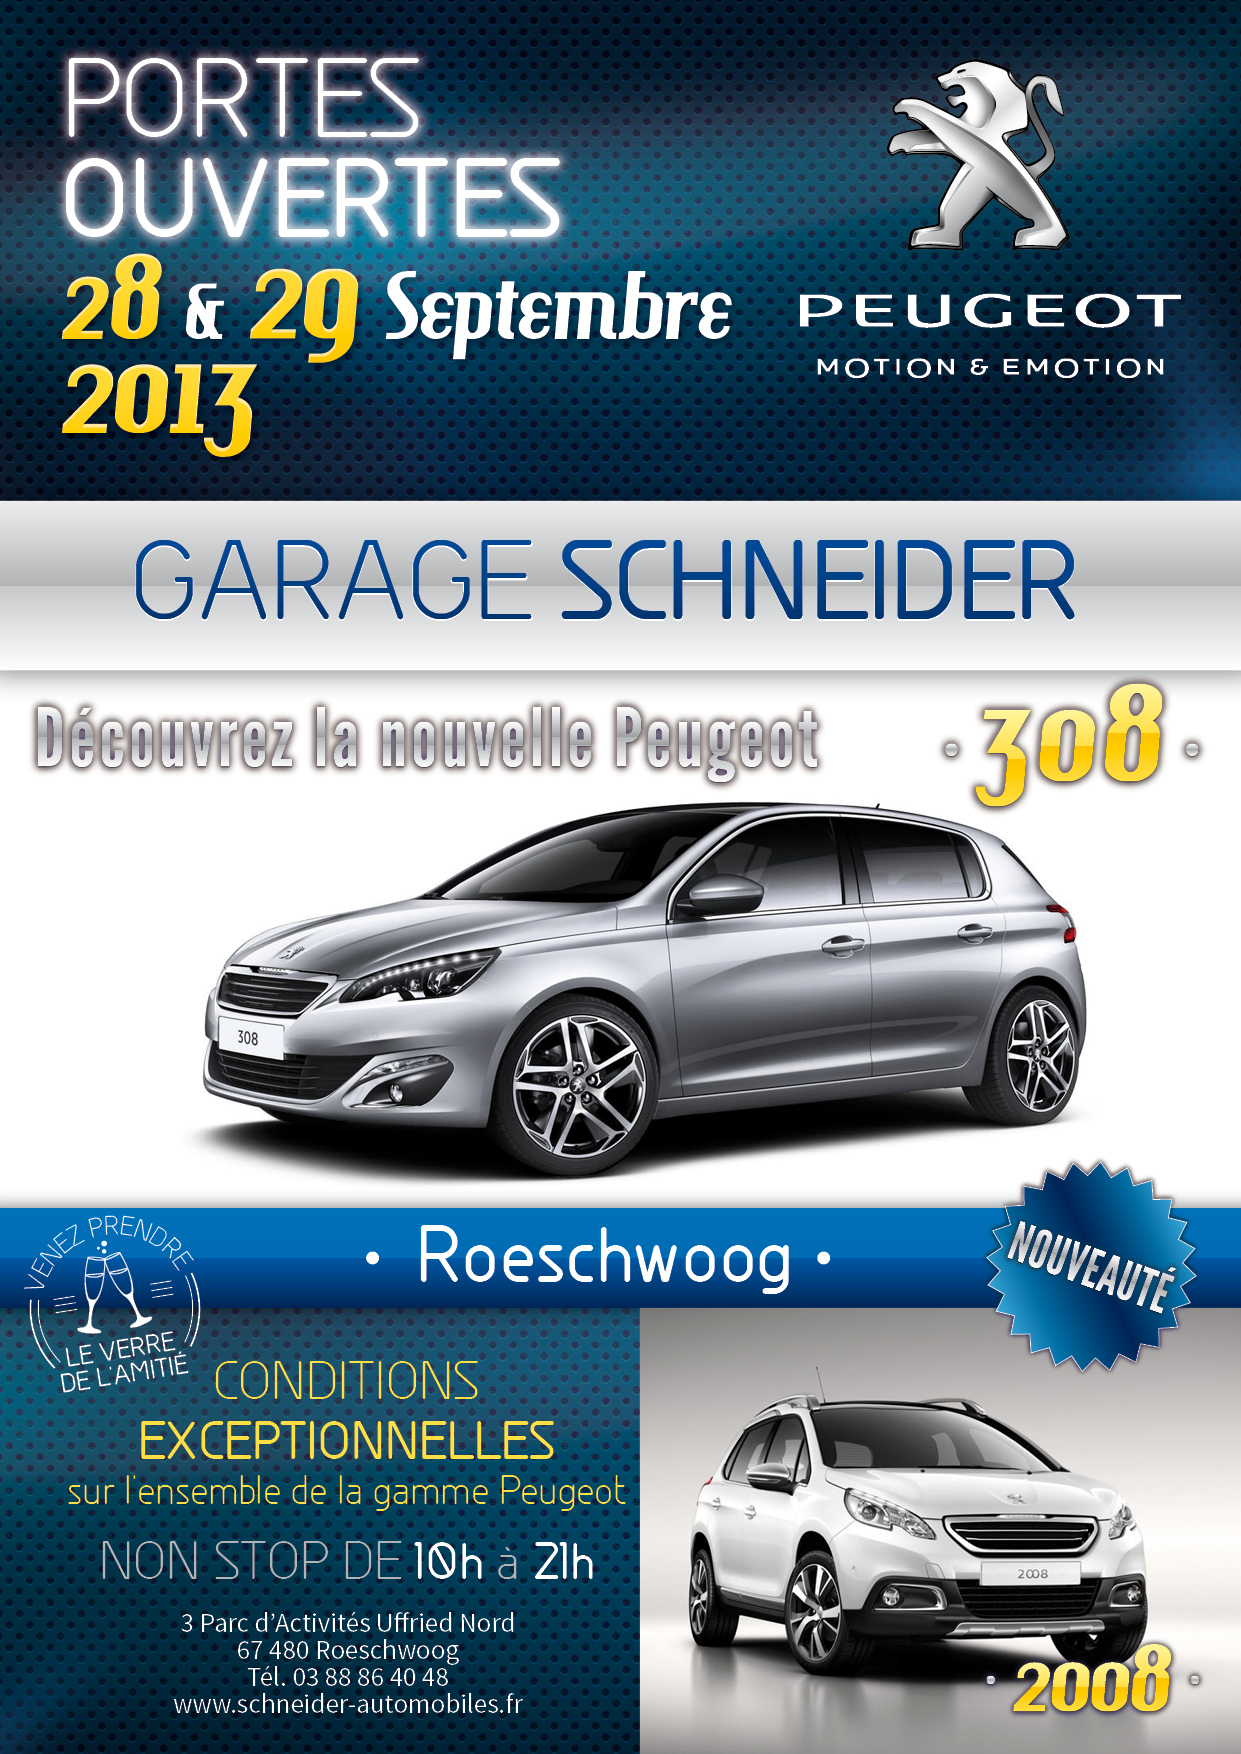 portes ouvertes septembre 2013 garage peugeot schneider roeschwoog. Black Bedroom Furniture Sets. Home Design Ideas